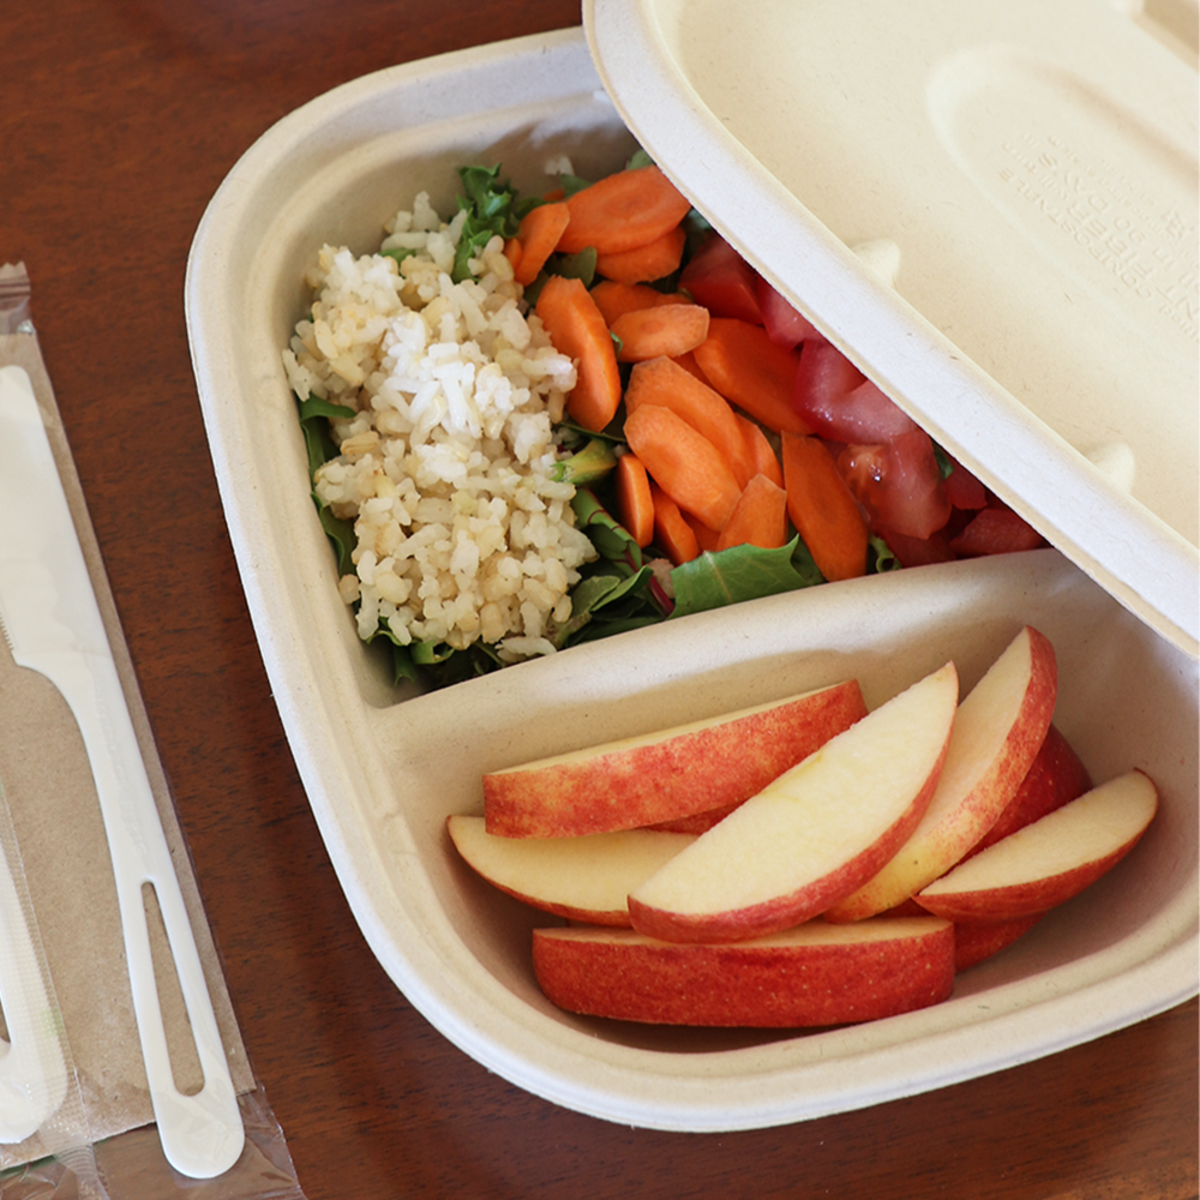 Fiber Food Container Containing Rice, Apples, and Vegetables.